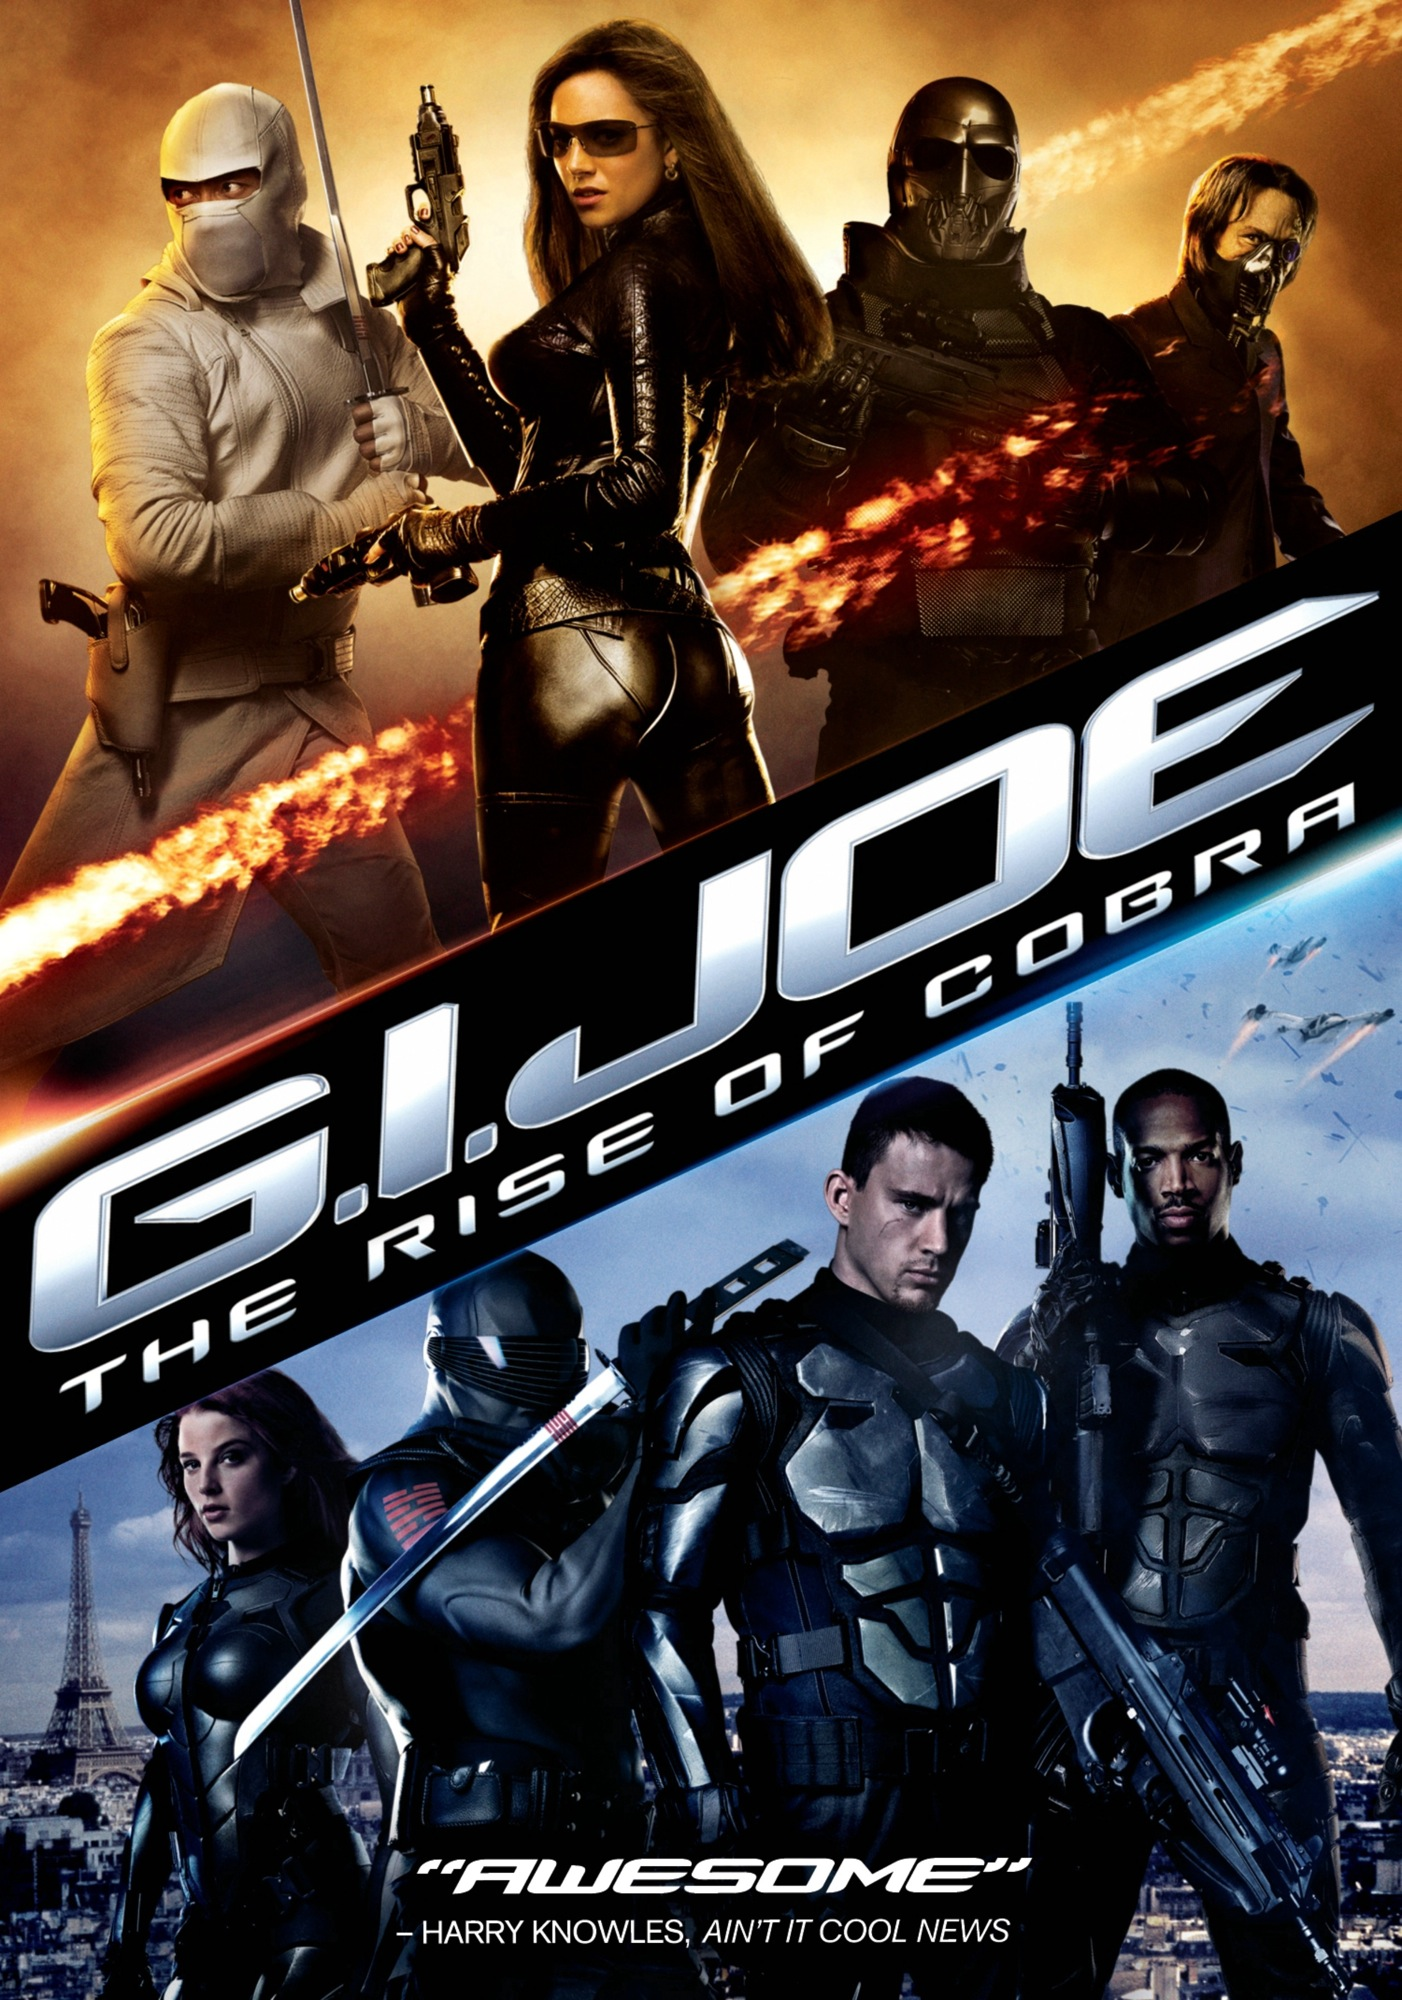 Title: G.I. Joe: The Rise of Cobra Director: Stephen Sommers Writers: Stuart Beattie, David Elliot, Paul Lovett Distributed By: Paramount...